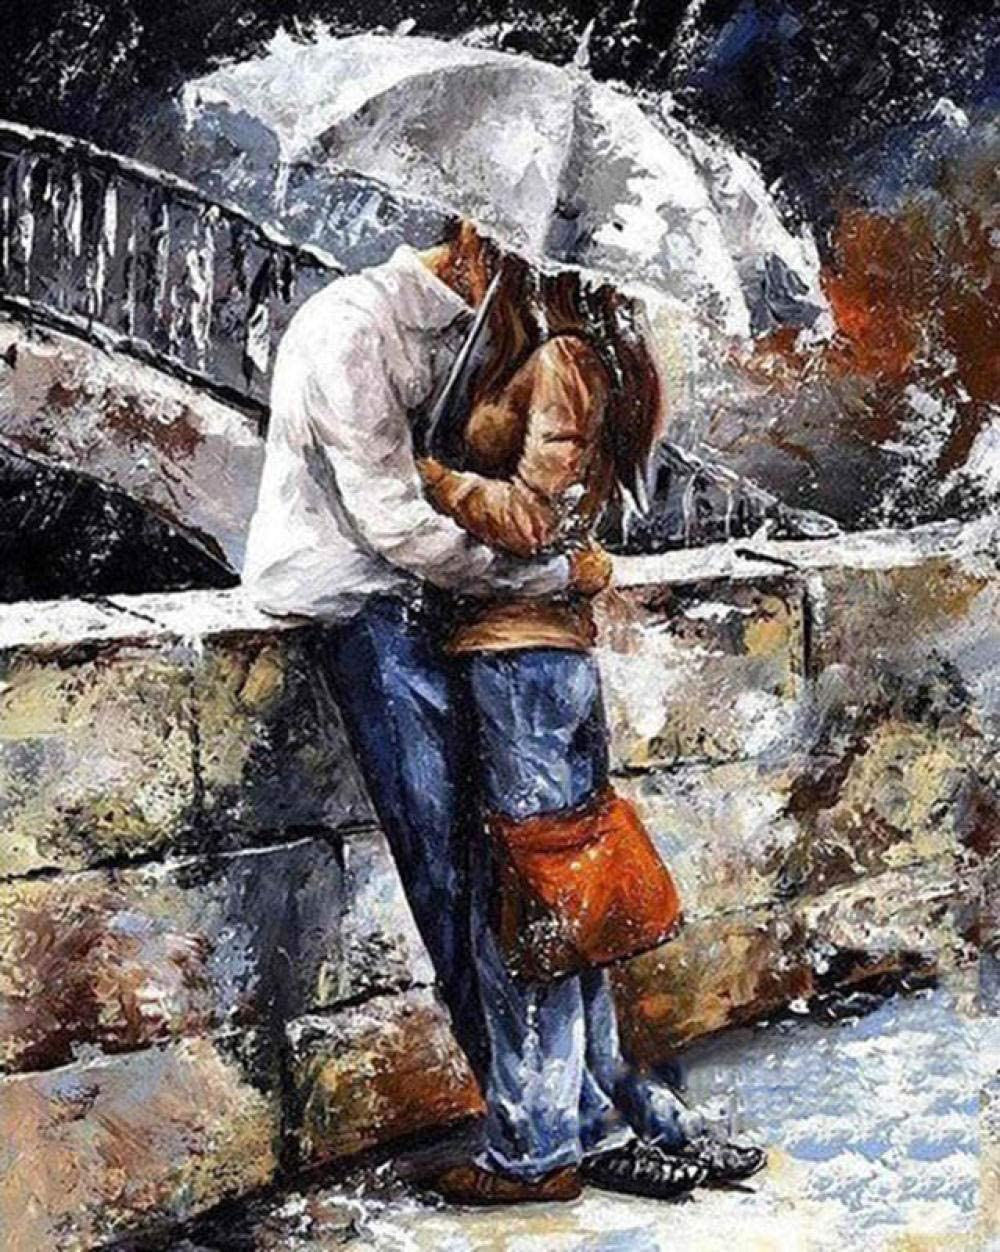 Magicxyz Diy Oil Painting Paint By Number Lovers Kiss And Umbrella Romantic 40x50cm With Brushes Paints And Canvas Home Decor For Adults Children Seniors Junior Beginner Level Acrylics Painting Kits Amazon Co Uk Kitchen